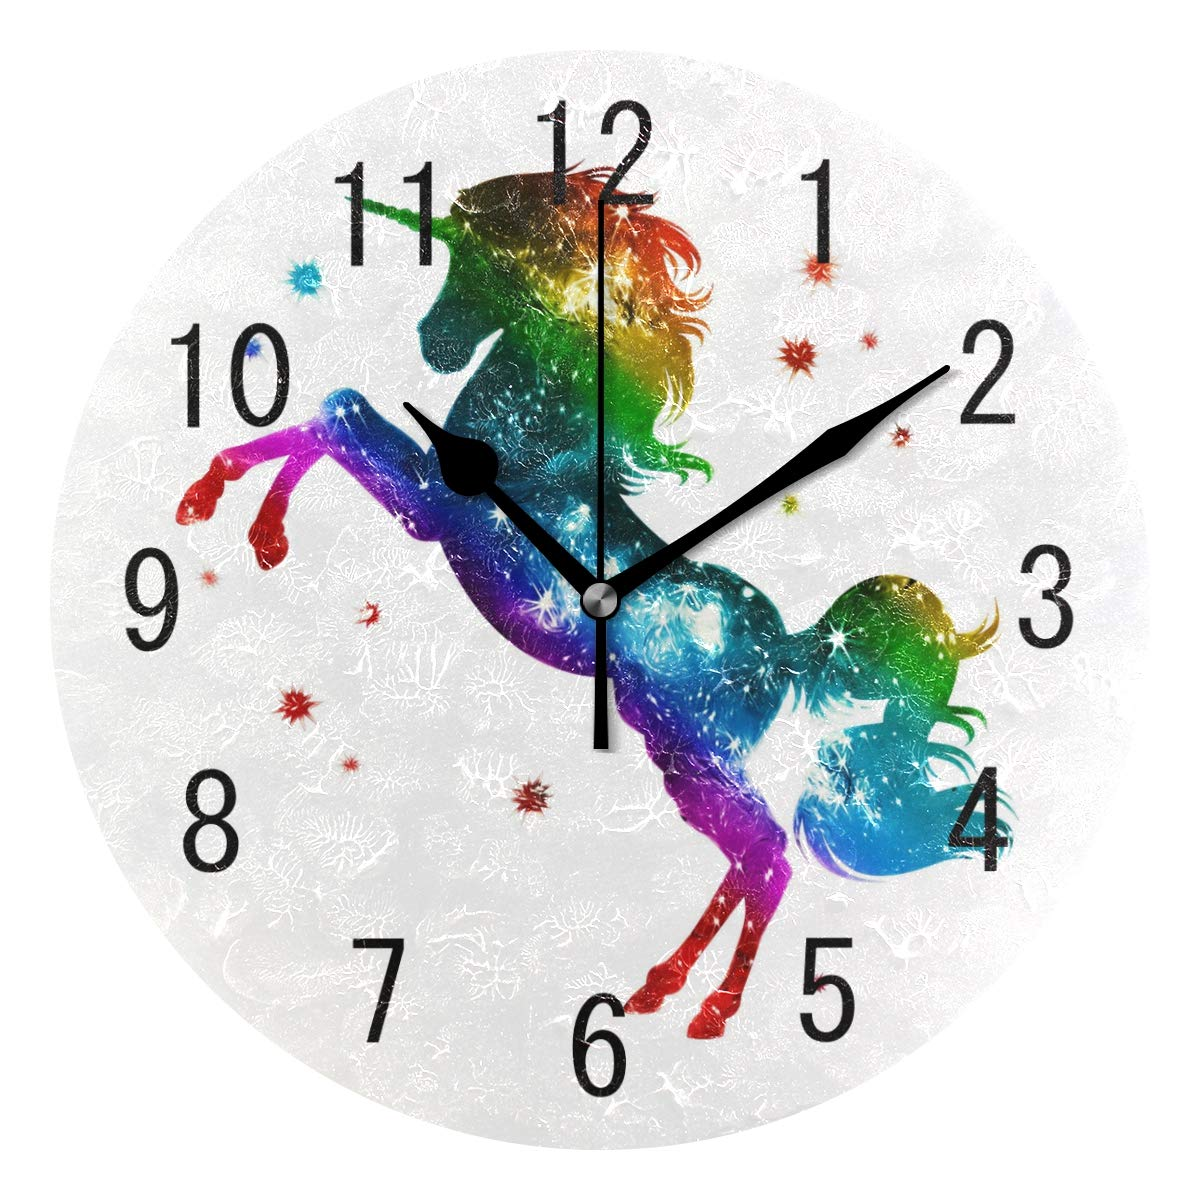 ALAZA Home Decor Rainbow Unicorn Galaxy Nebula Star Round Acrylic Wall Clock Non Ticking Silent Clock Art for Living Room Kitchen Bedroom